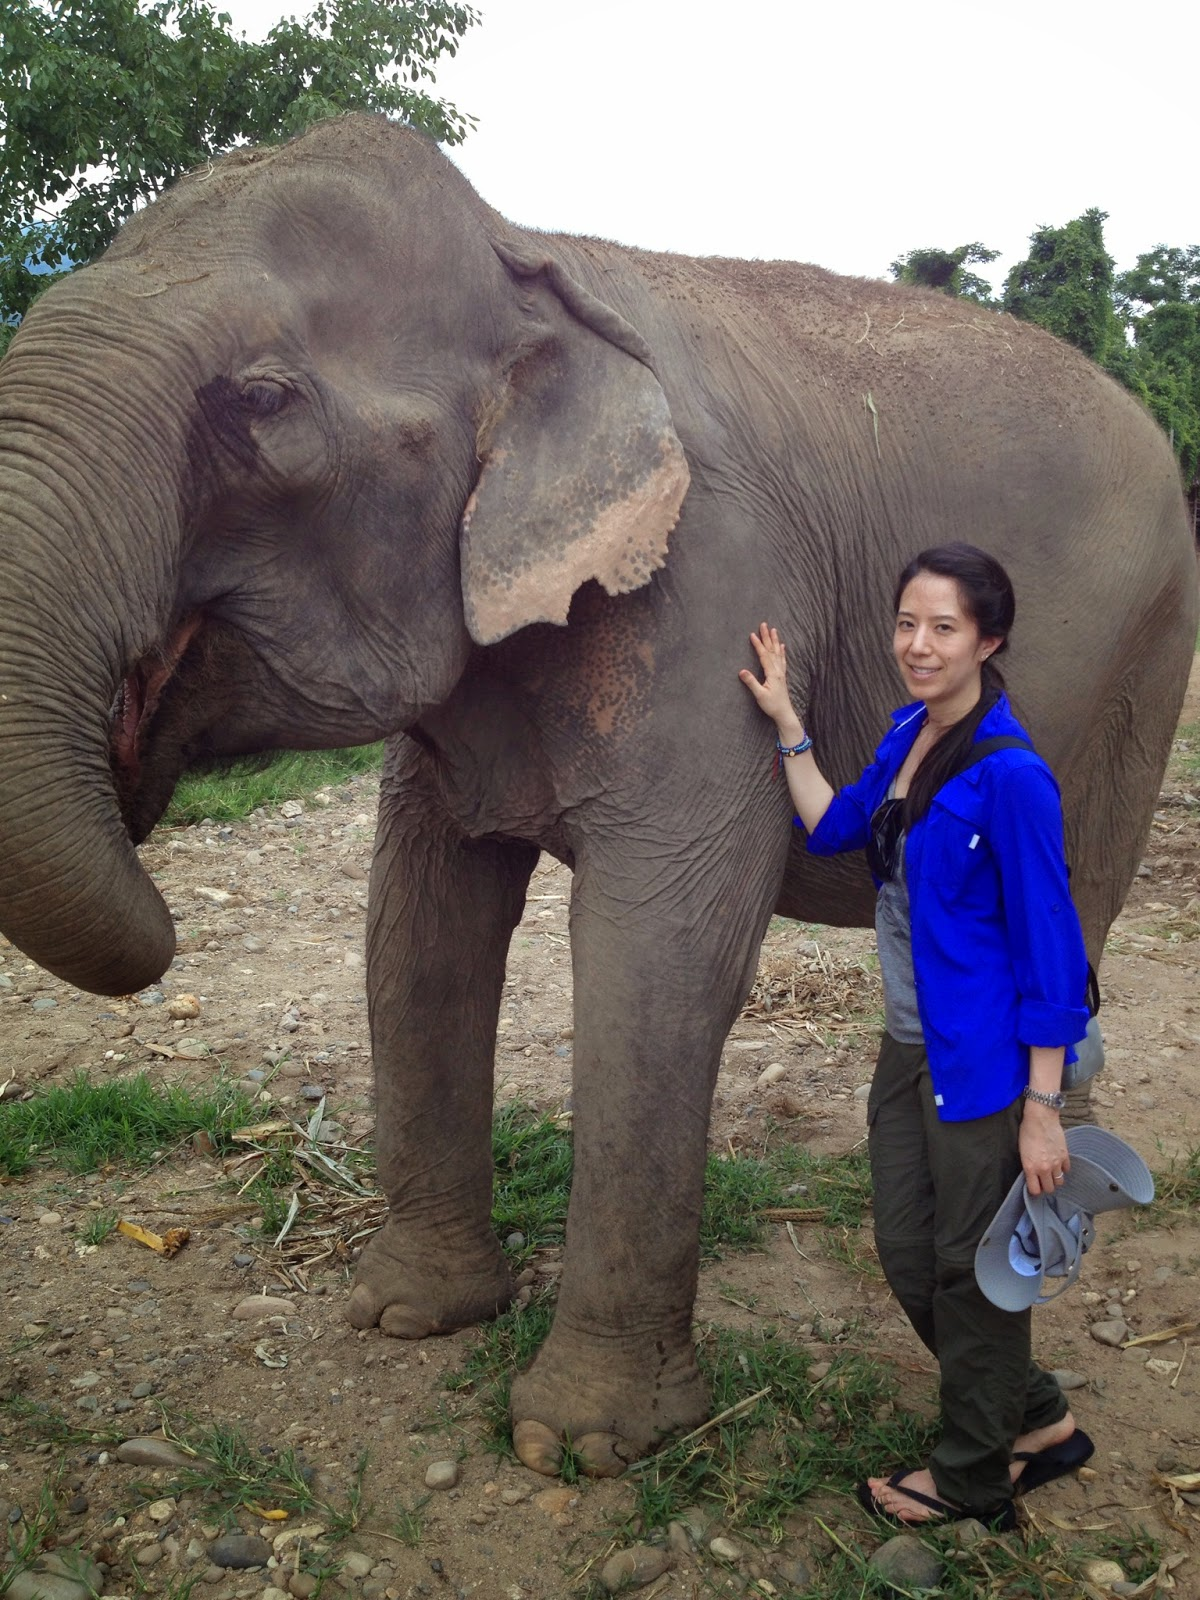 Chiang Mai - These elephants are so big!